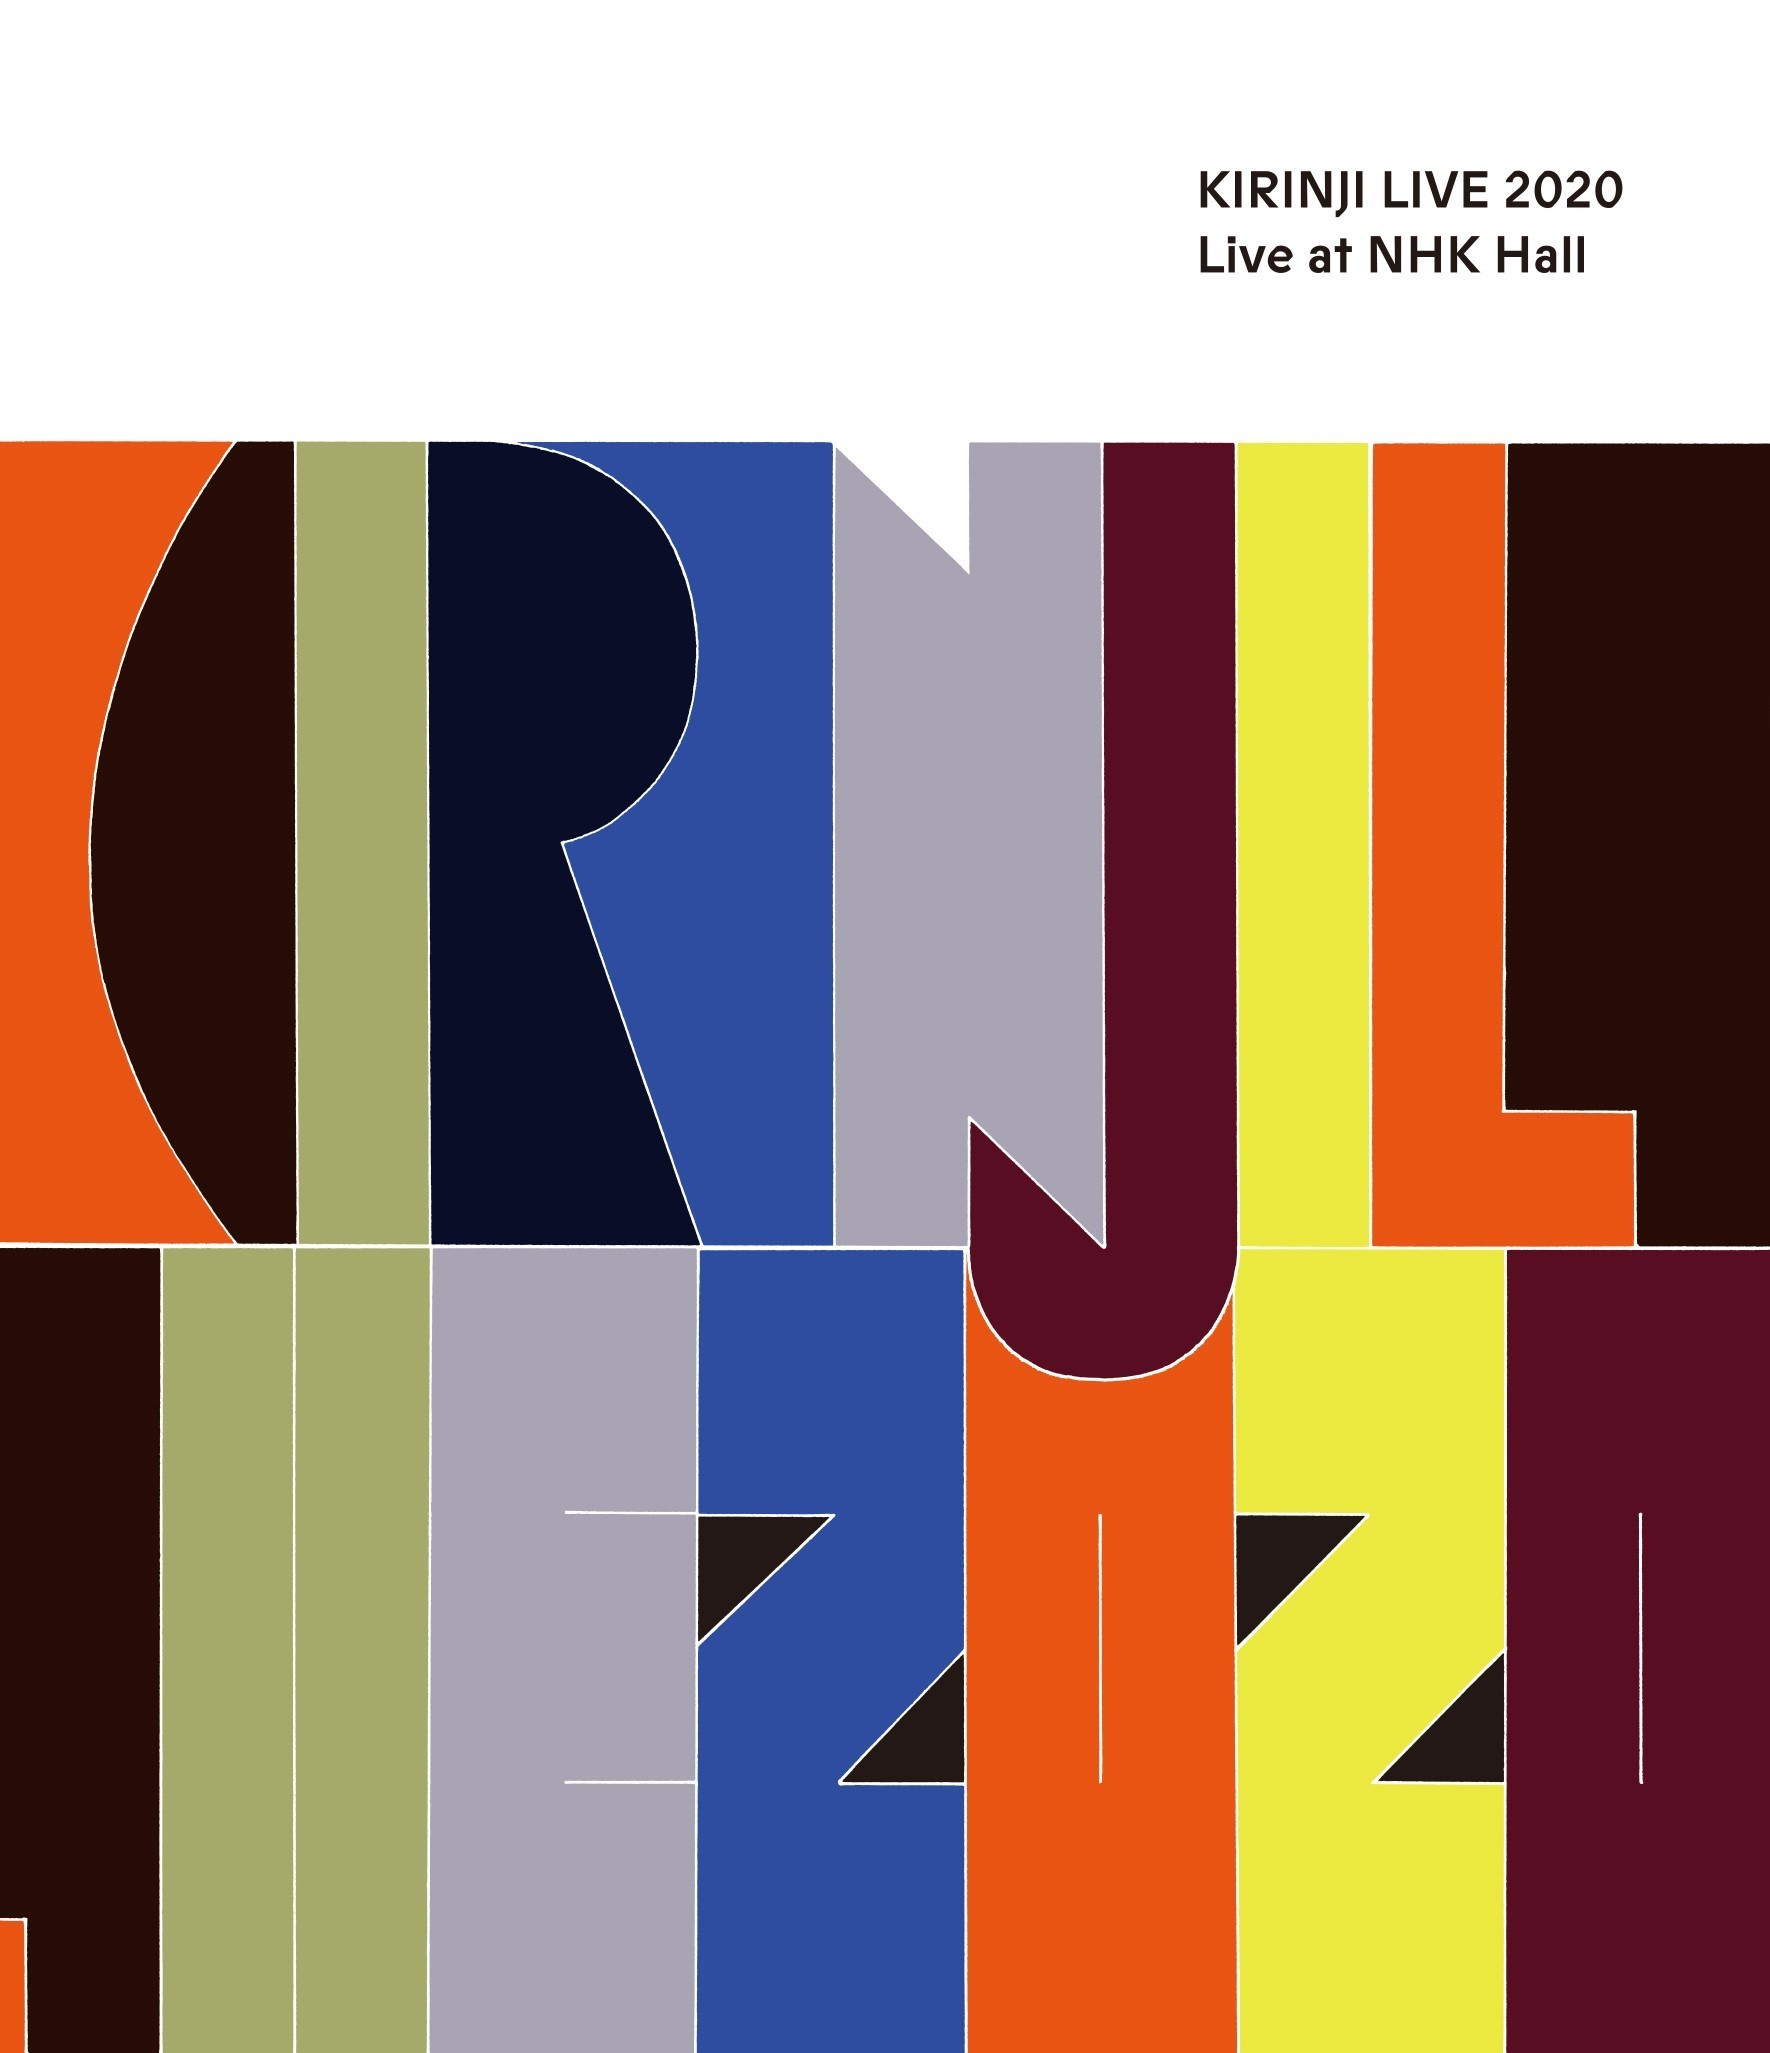 KIRINJI LIVE 2020 -Live at NHK Hall-